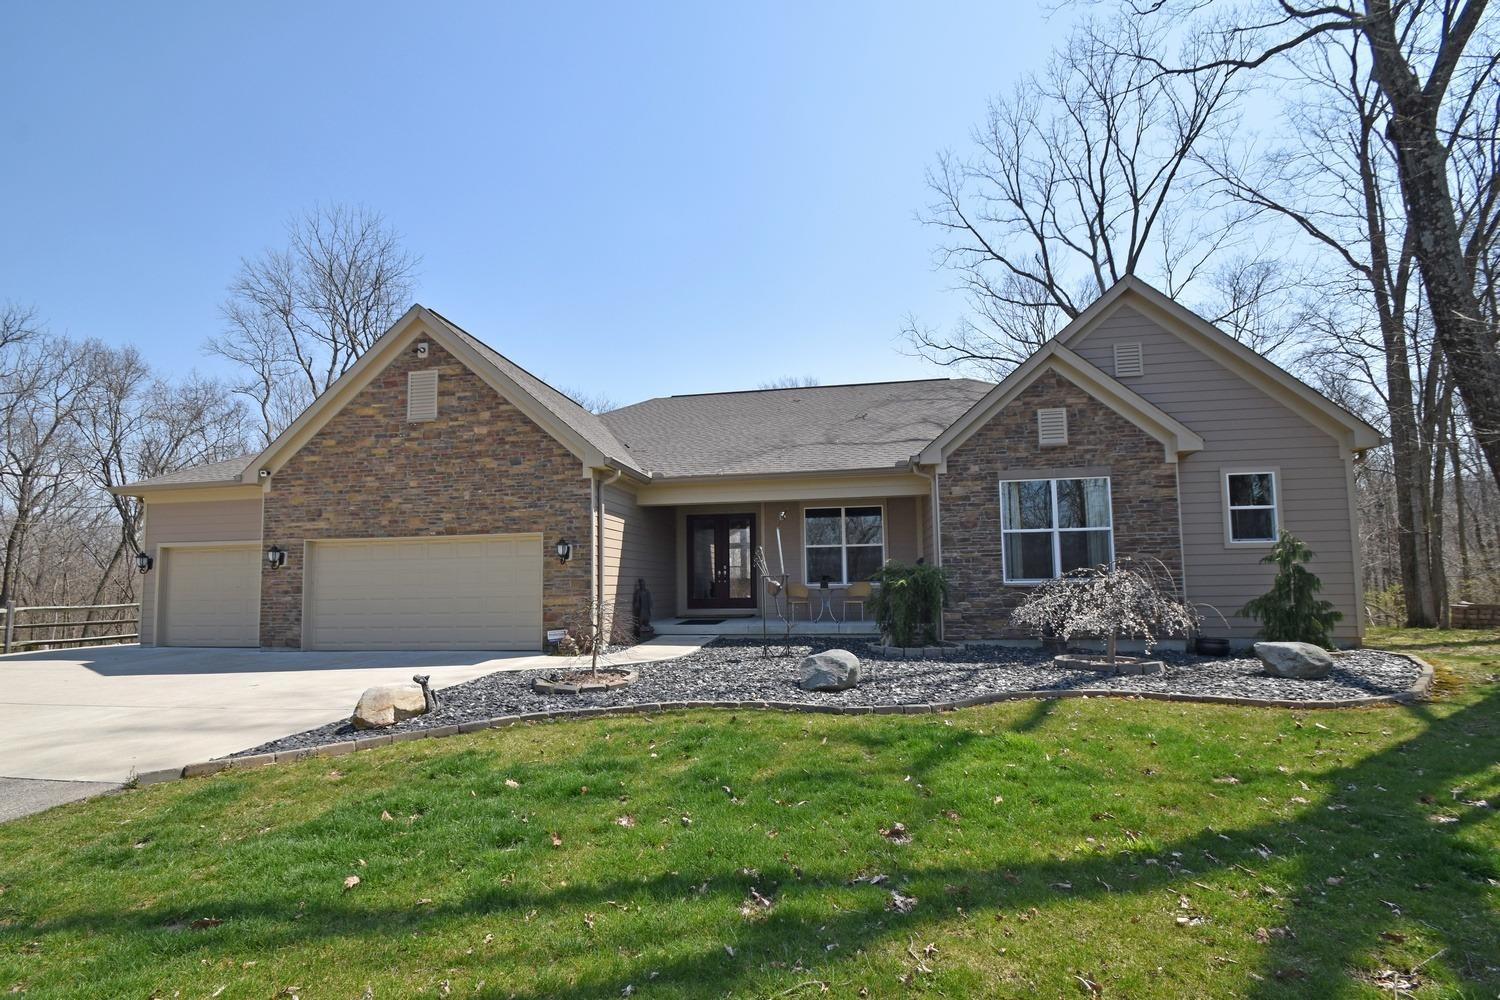 6629 Nickel Rd Turtle Creek Twp., OH